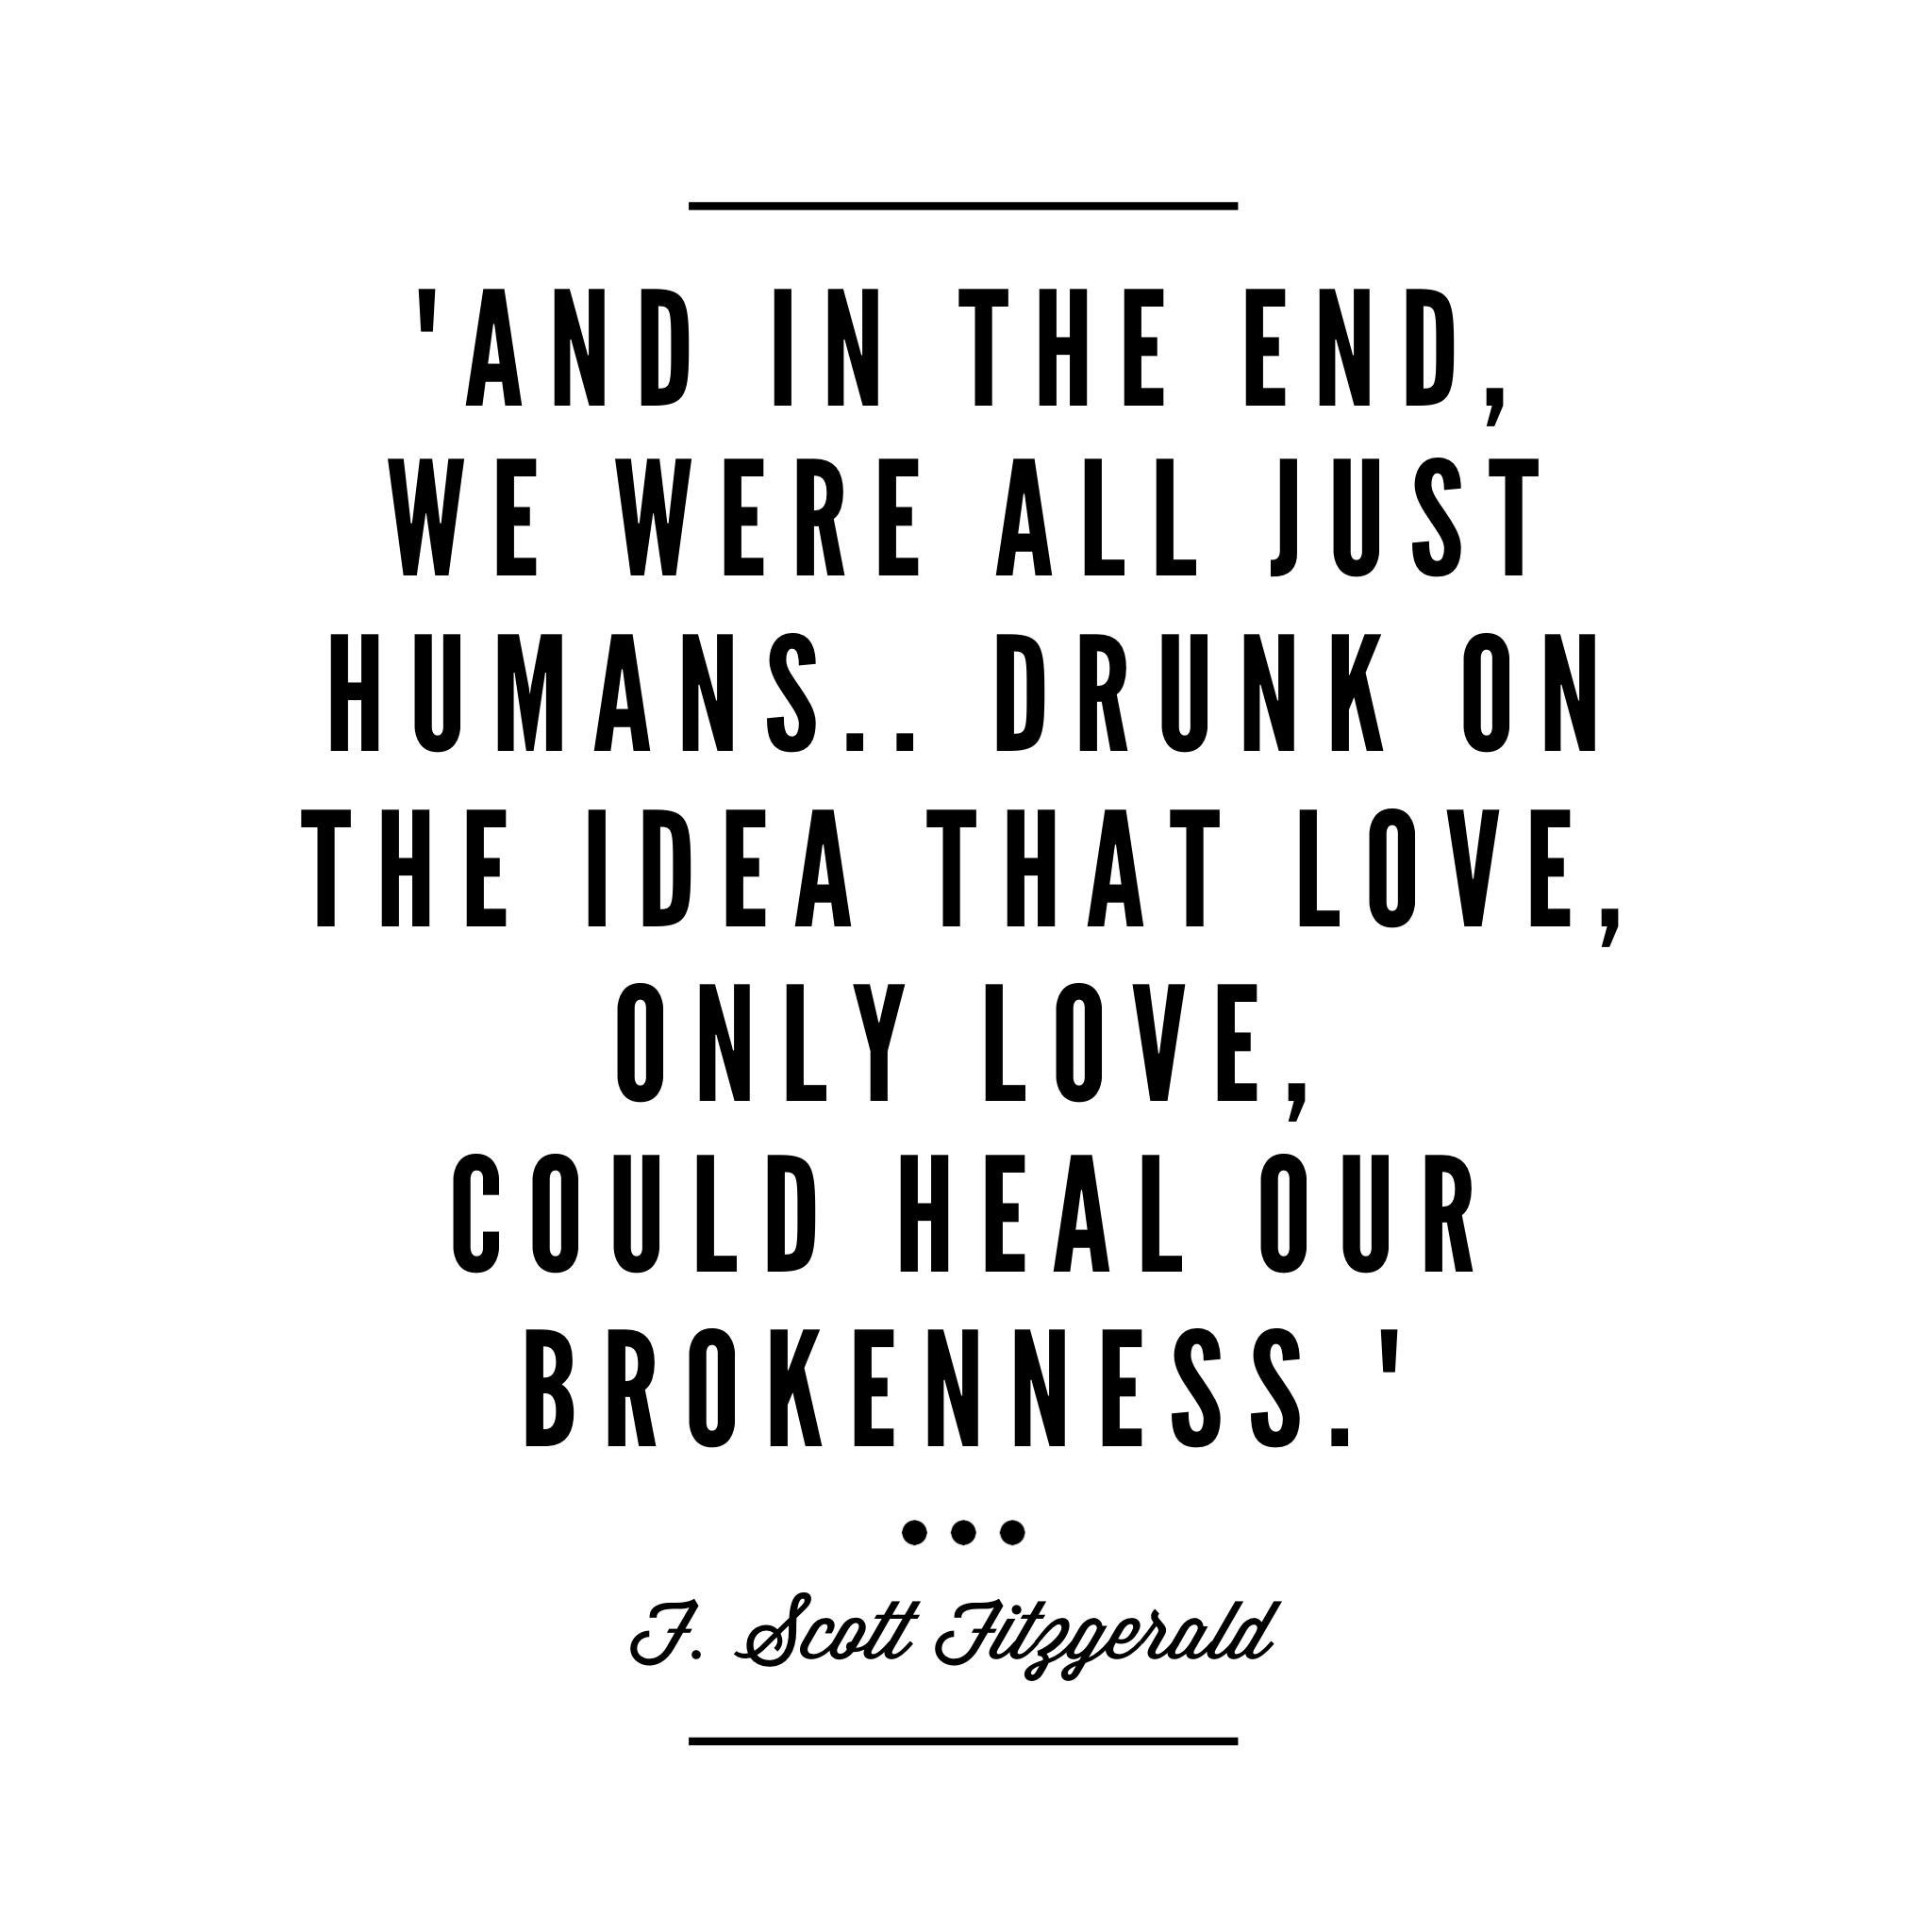 Love Quotes F Scott Fitzgerald Love Only Love Could Heal Our Brokenness Fscott Fitzgerald